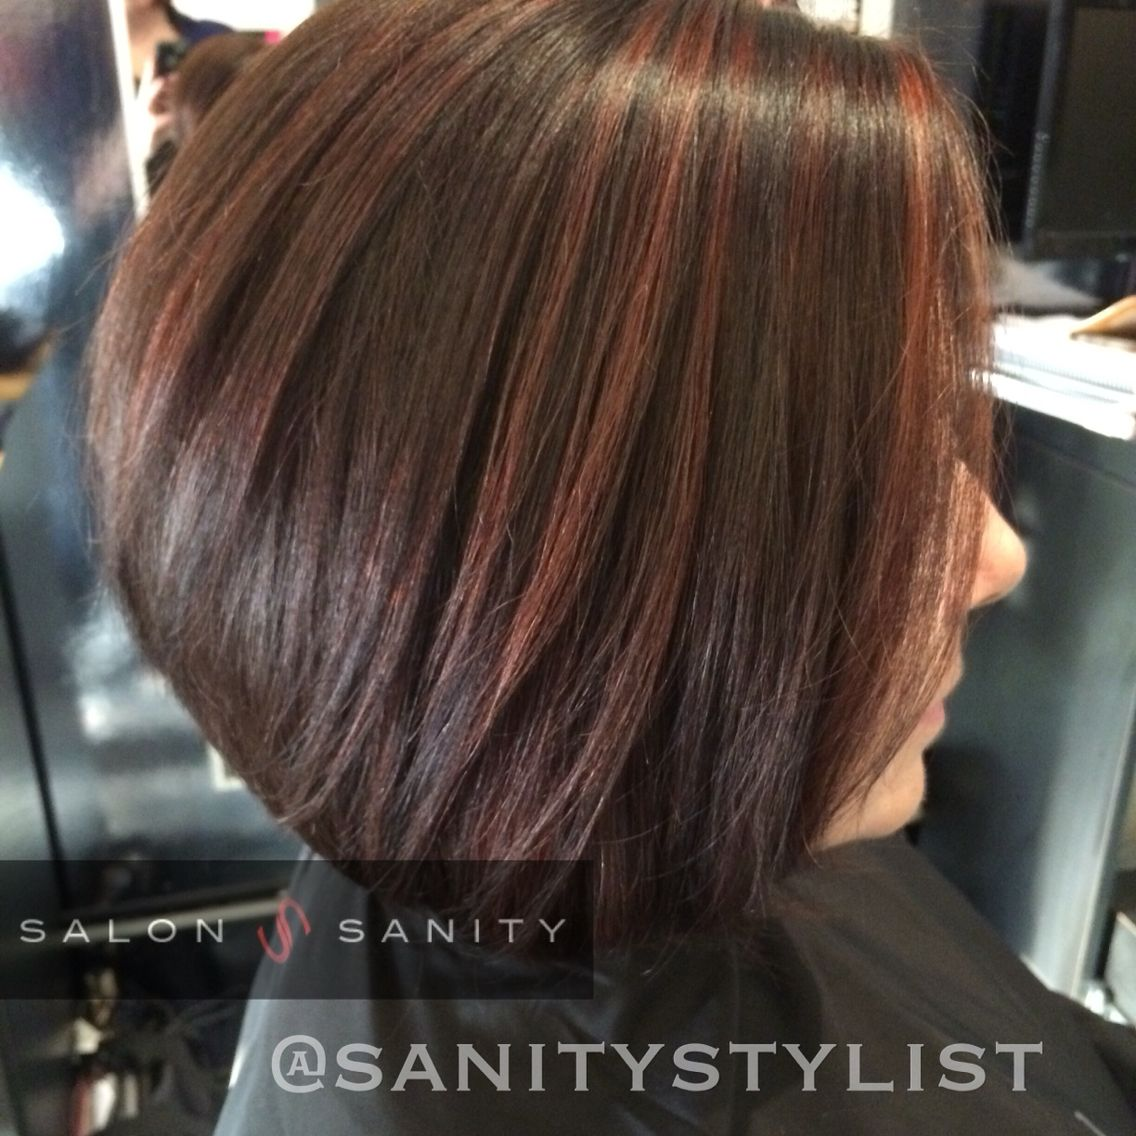 Cocoa brown and cinnamon highlights   Just Me   Pinterest ...